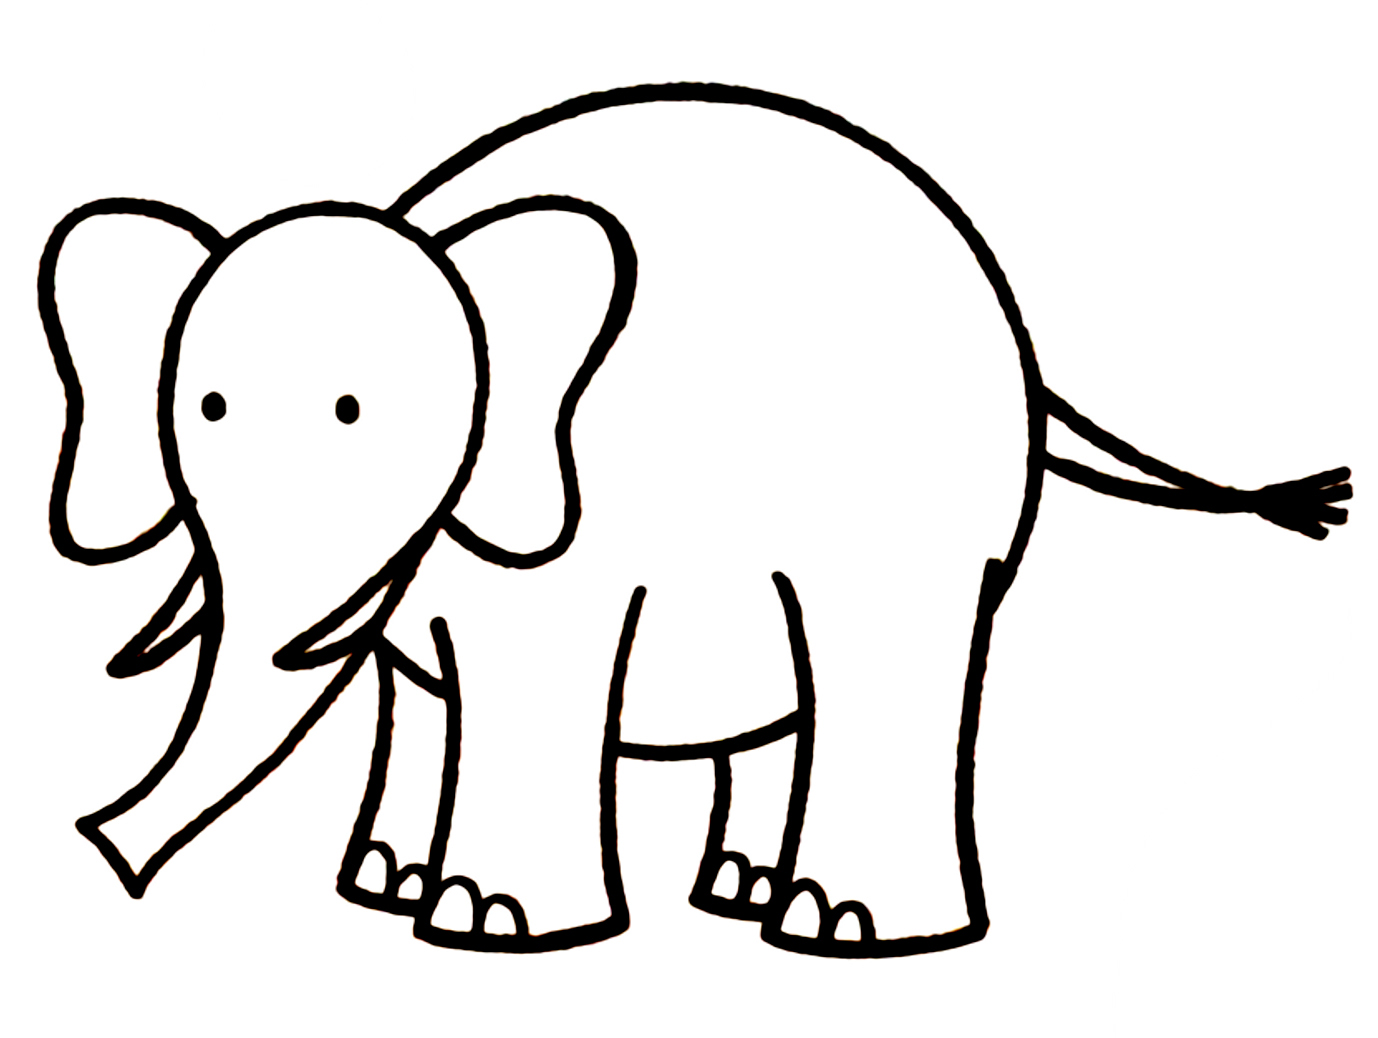 Elephant Drawings Images - Cliparts.co